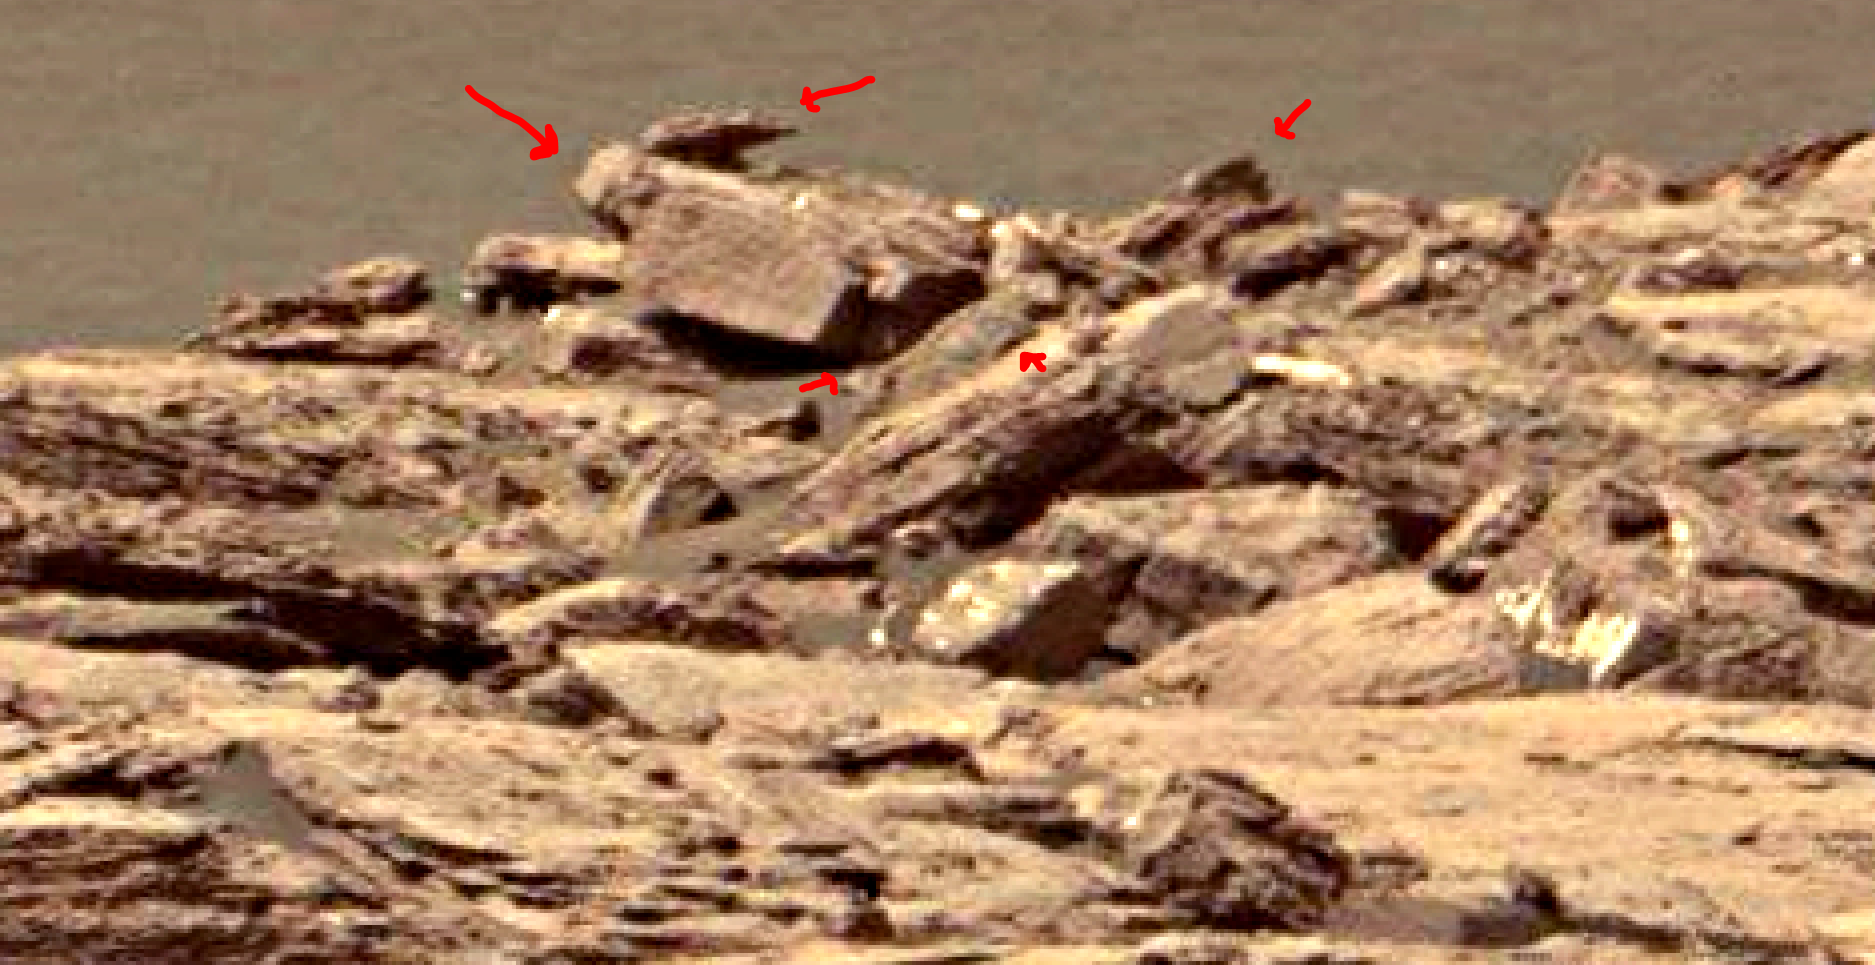 mars-sol-1493-anomaly-artifacts-1a-was-life-on-mars